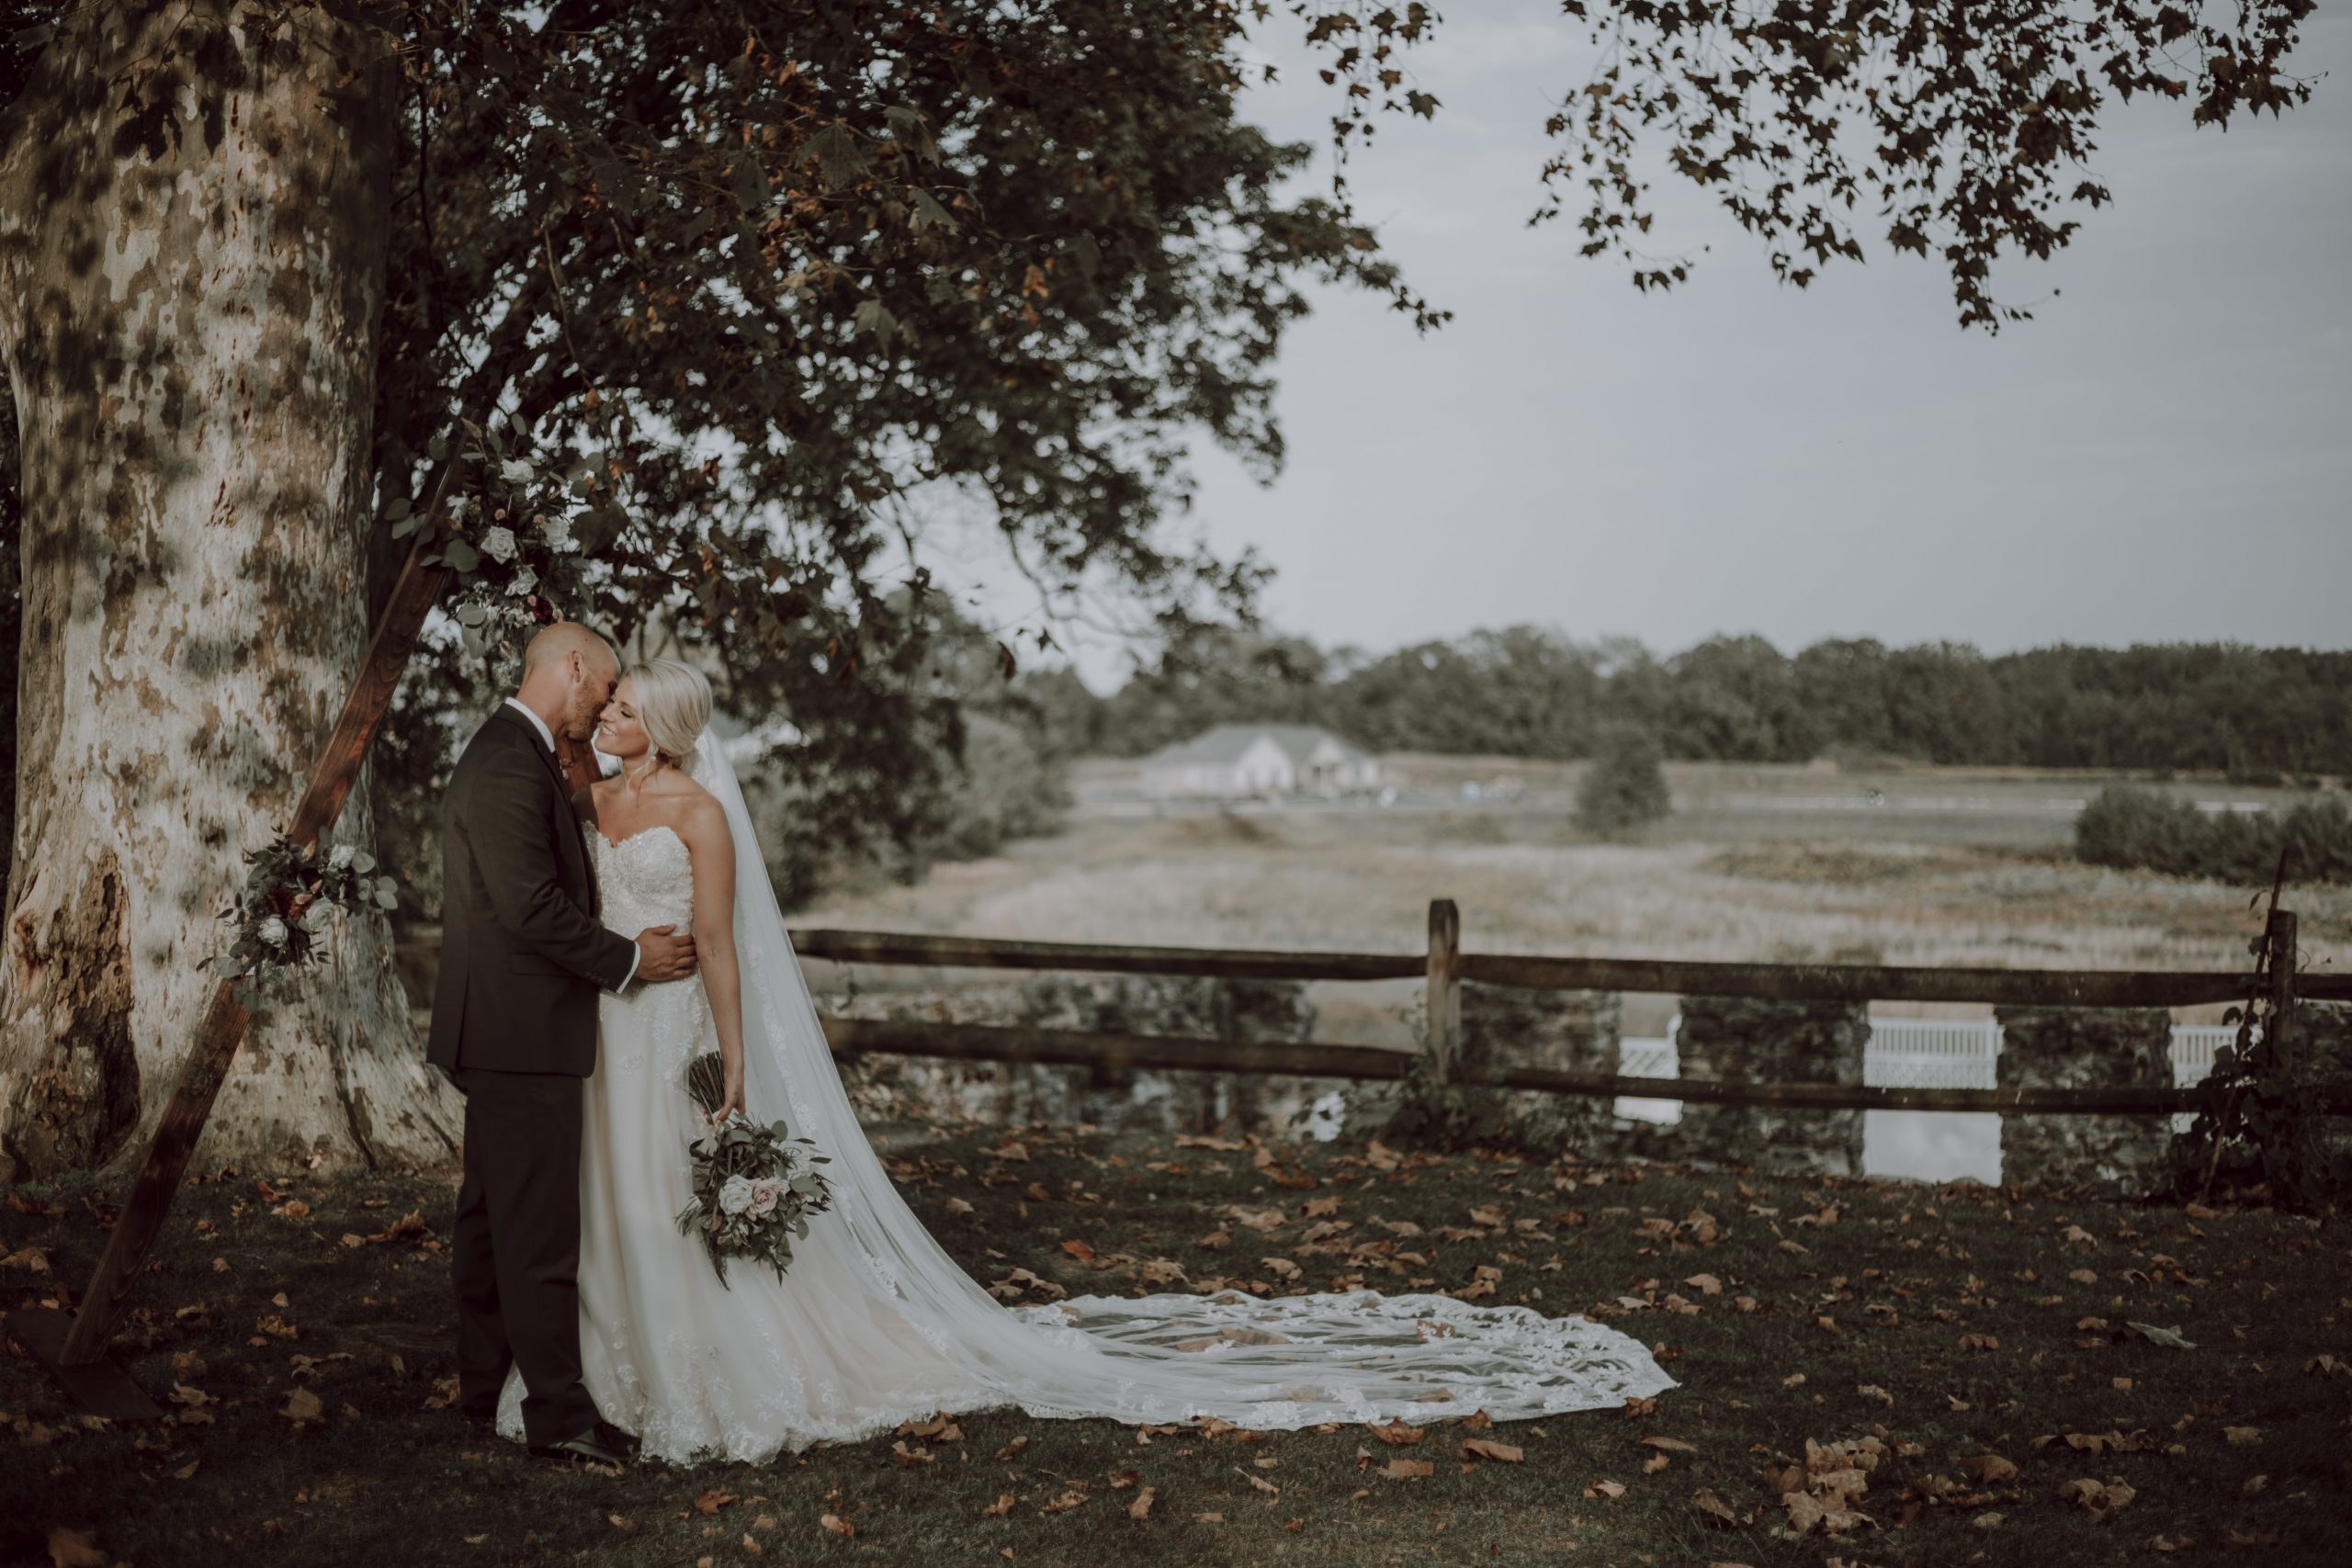 Sharing a moment under the shade of a large tree in the pasture. Captured by Lovefusion Photography at Stock's Manor in Mechanicsburg, PA. Featured on Dream Weddings.